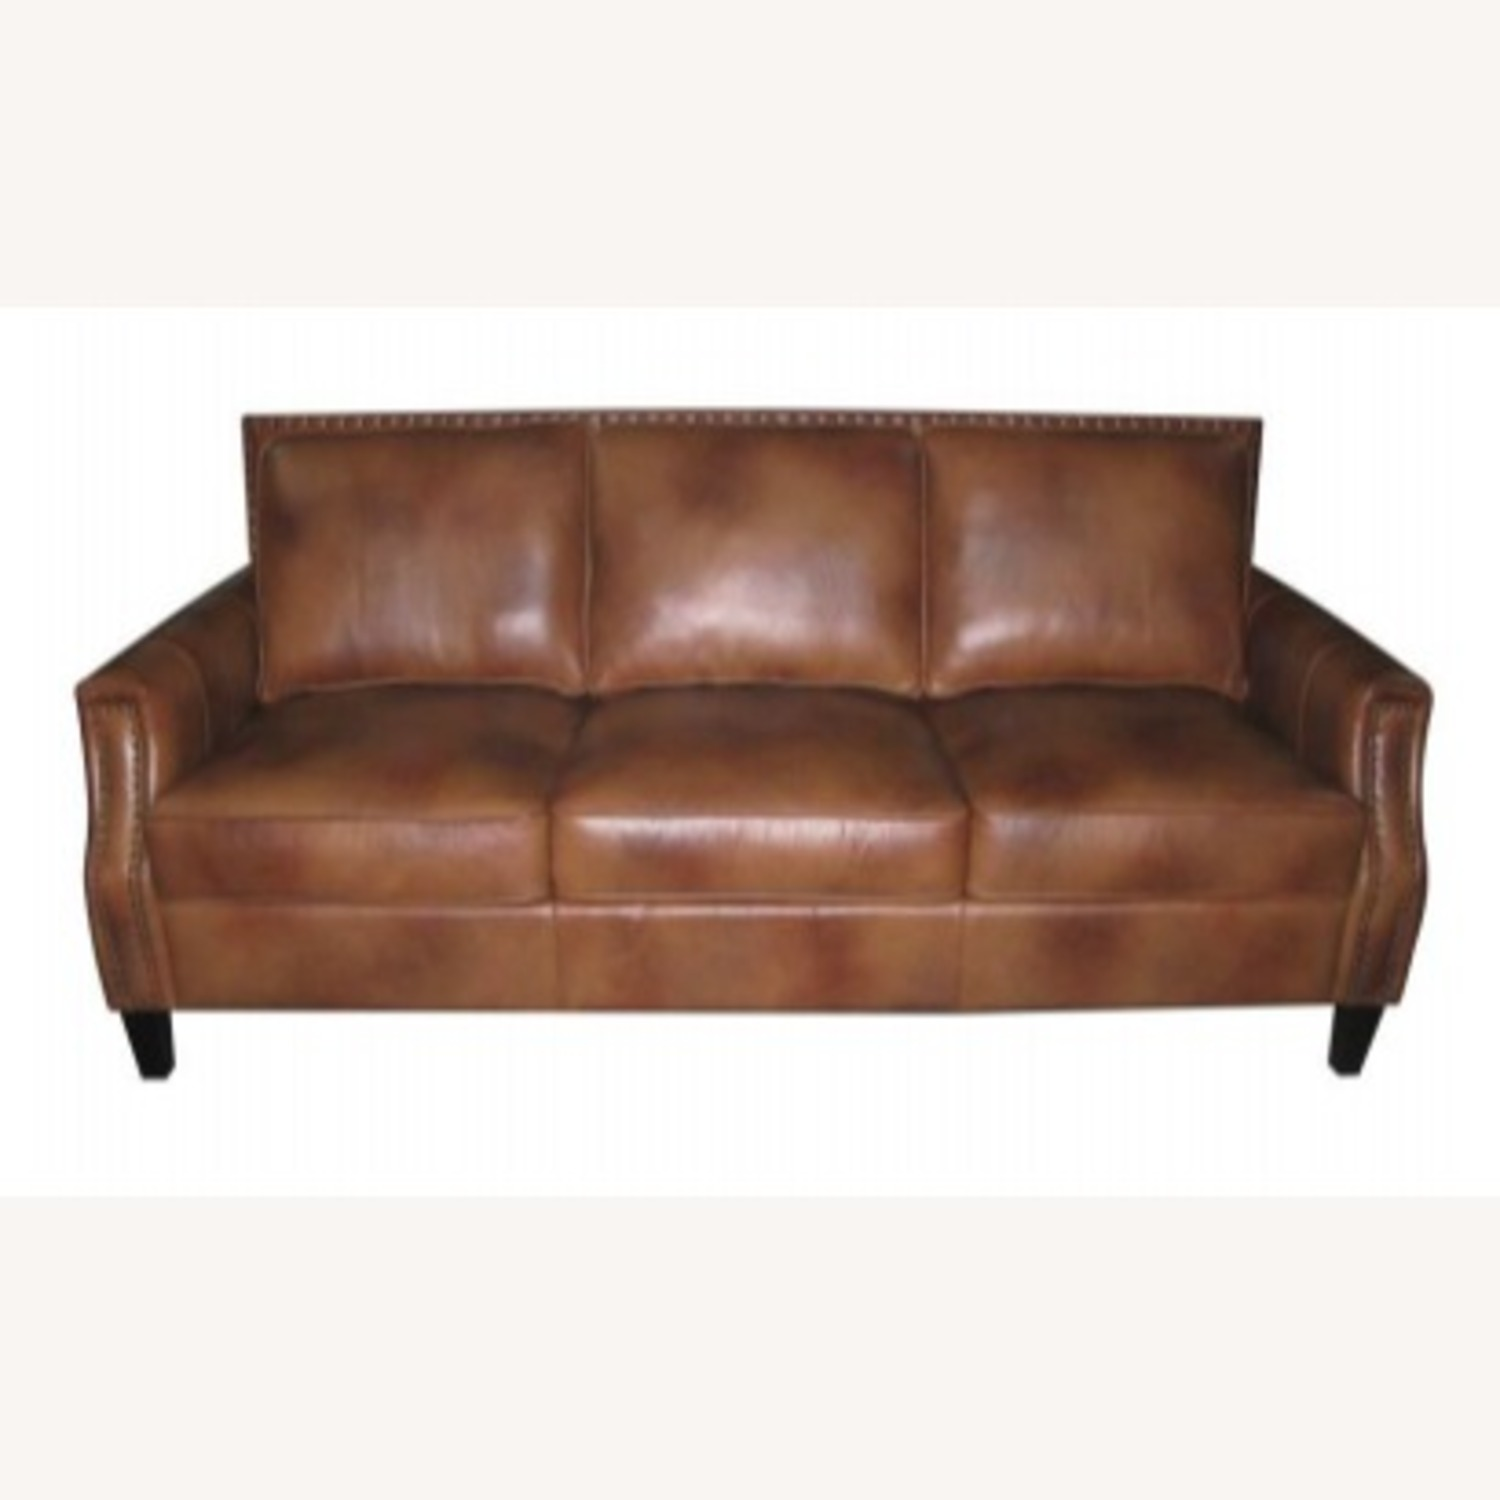 Sofa In Brown Sugar Leather Upholstery - image-0